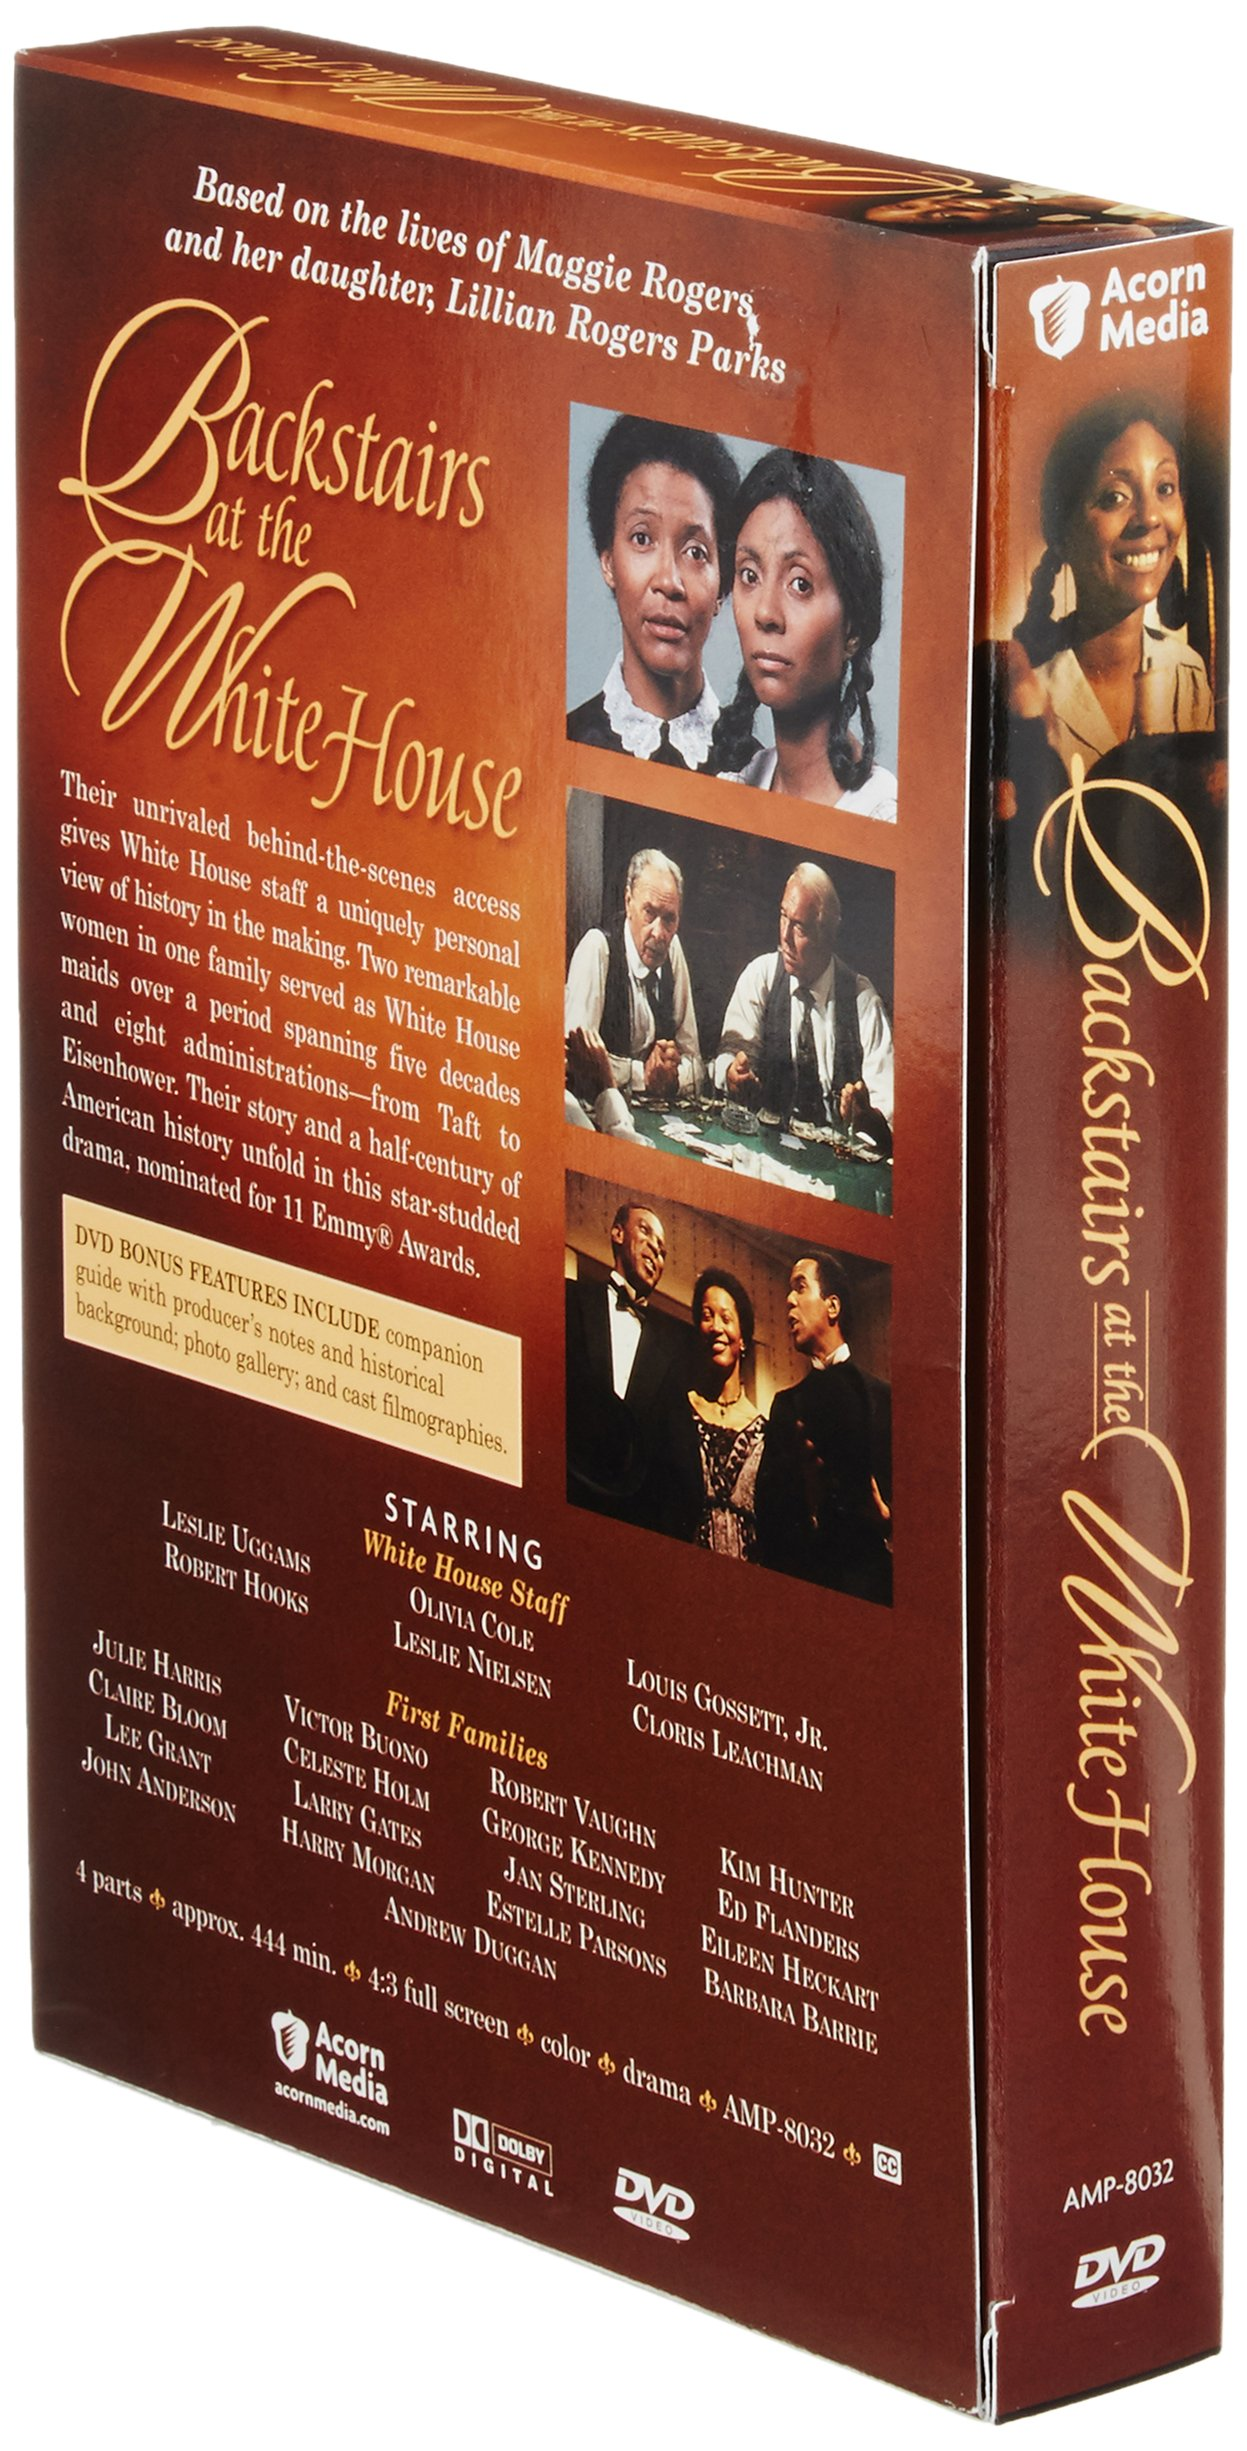 BACKSTAIRS AT THE WHITE HOUSE DVD